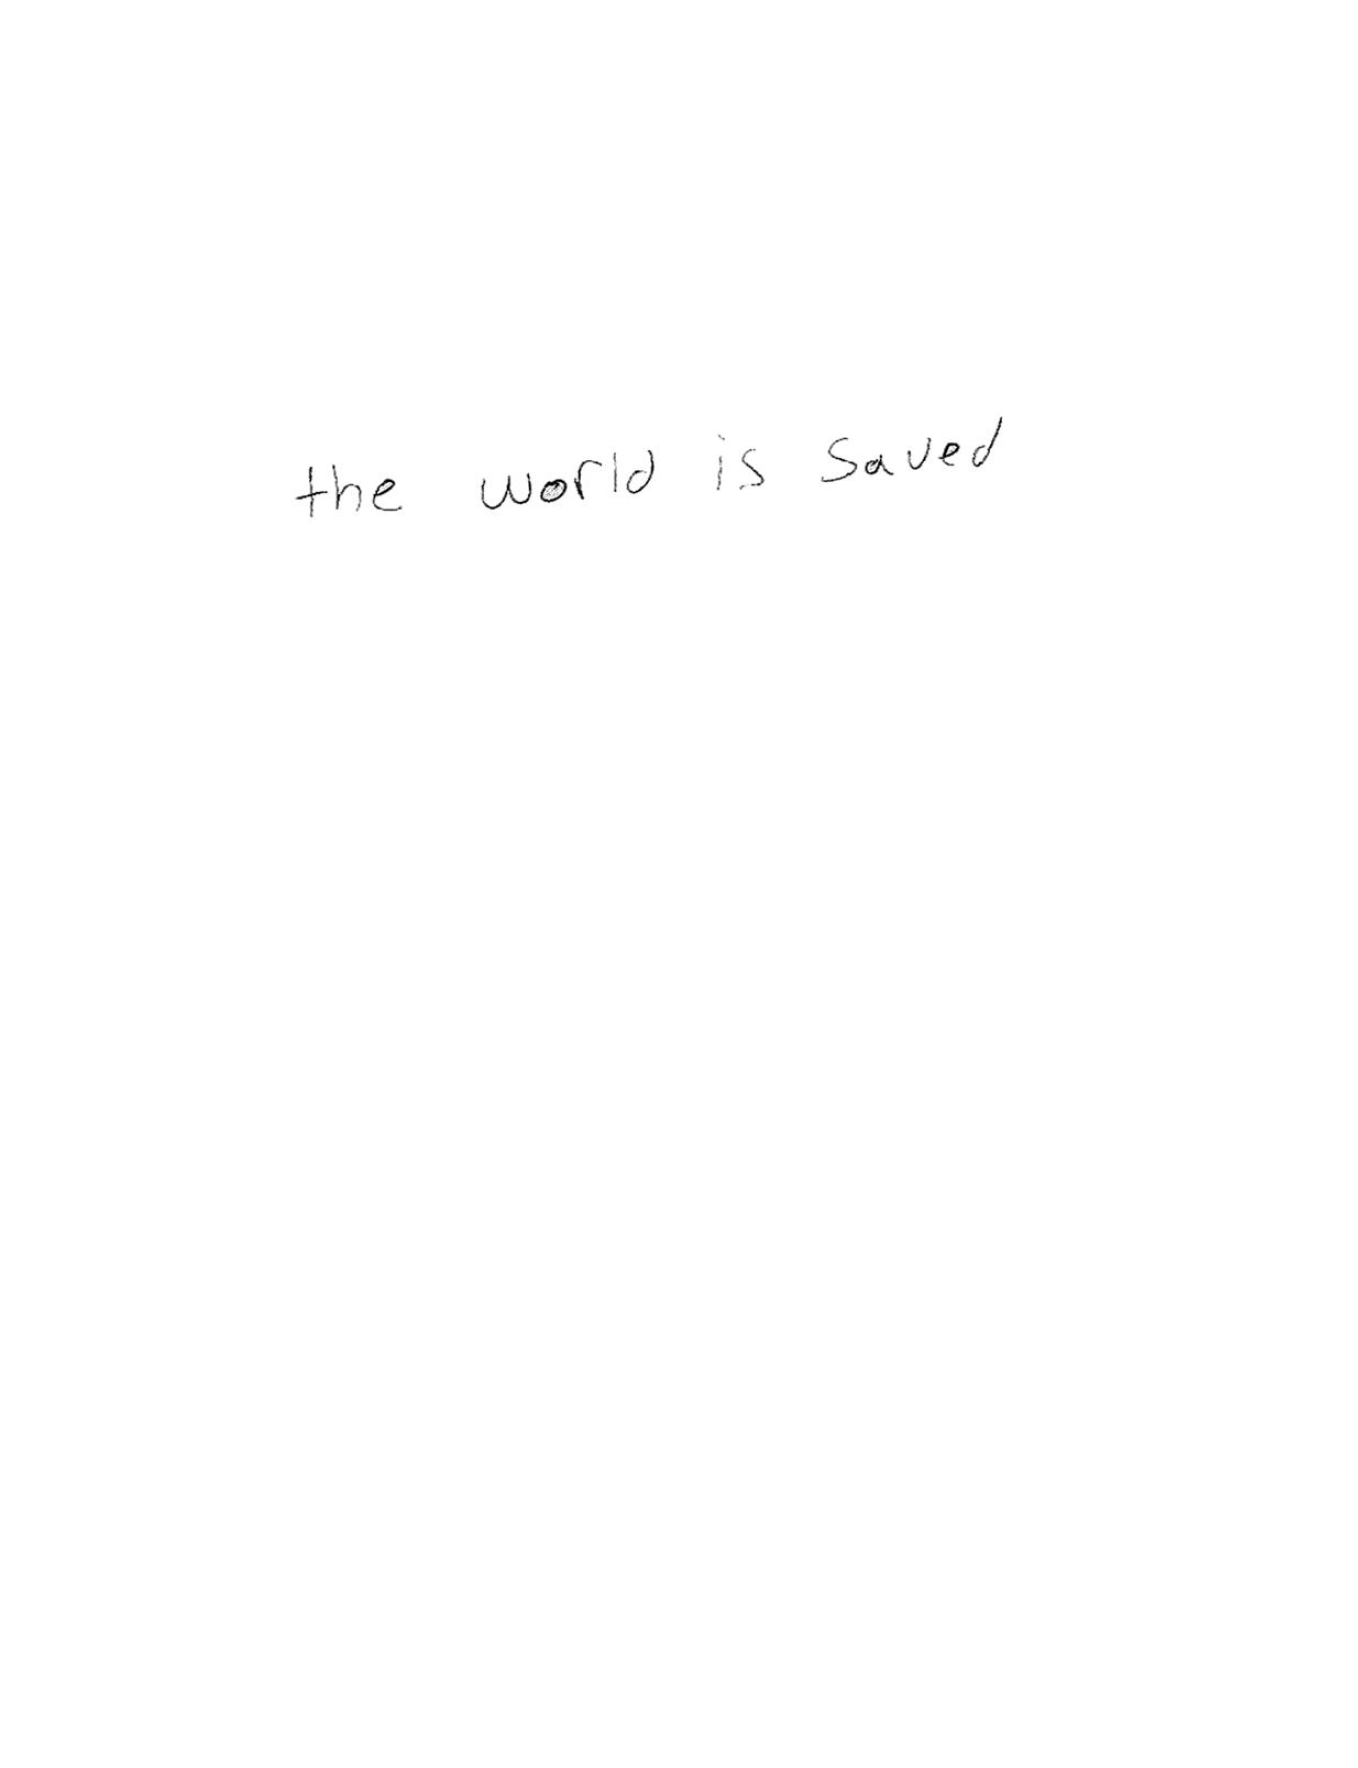 The World Is Saved, self-published 2009